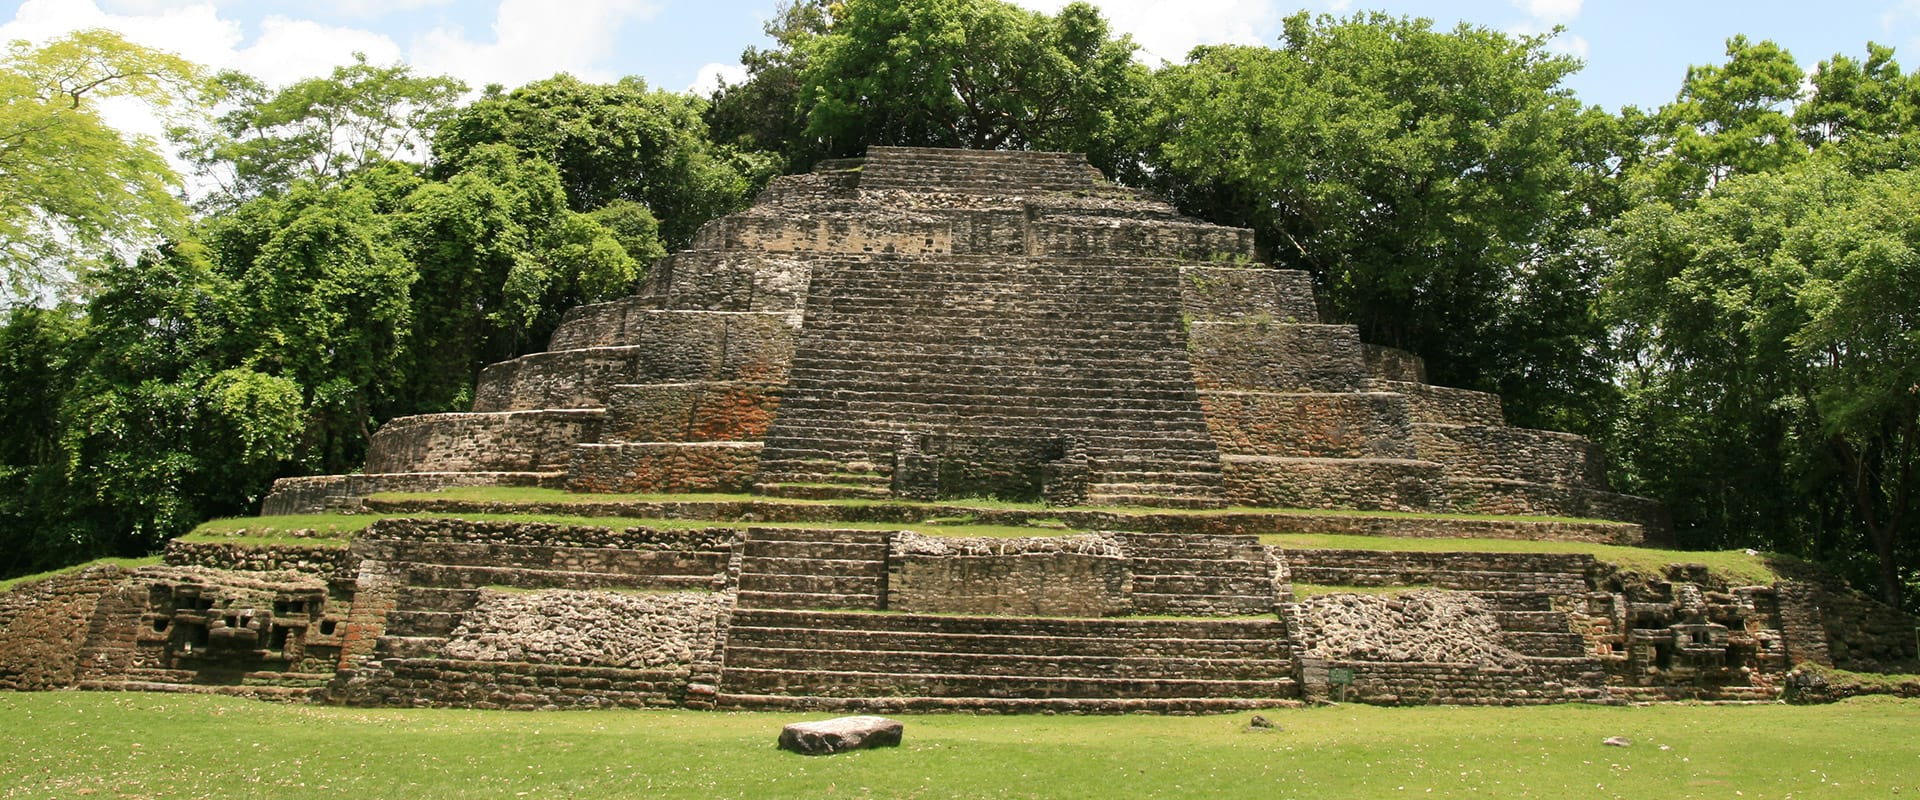 Ancient Mayan ruins in Belize